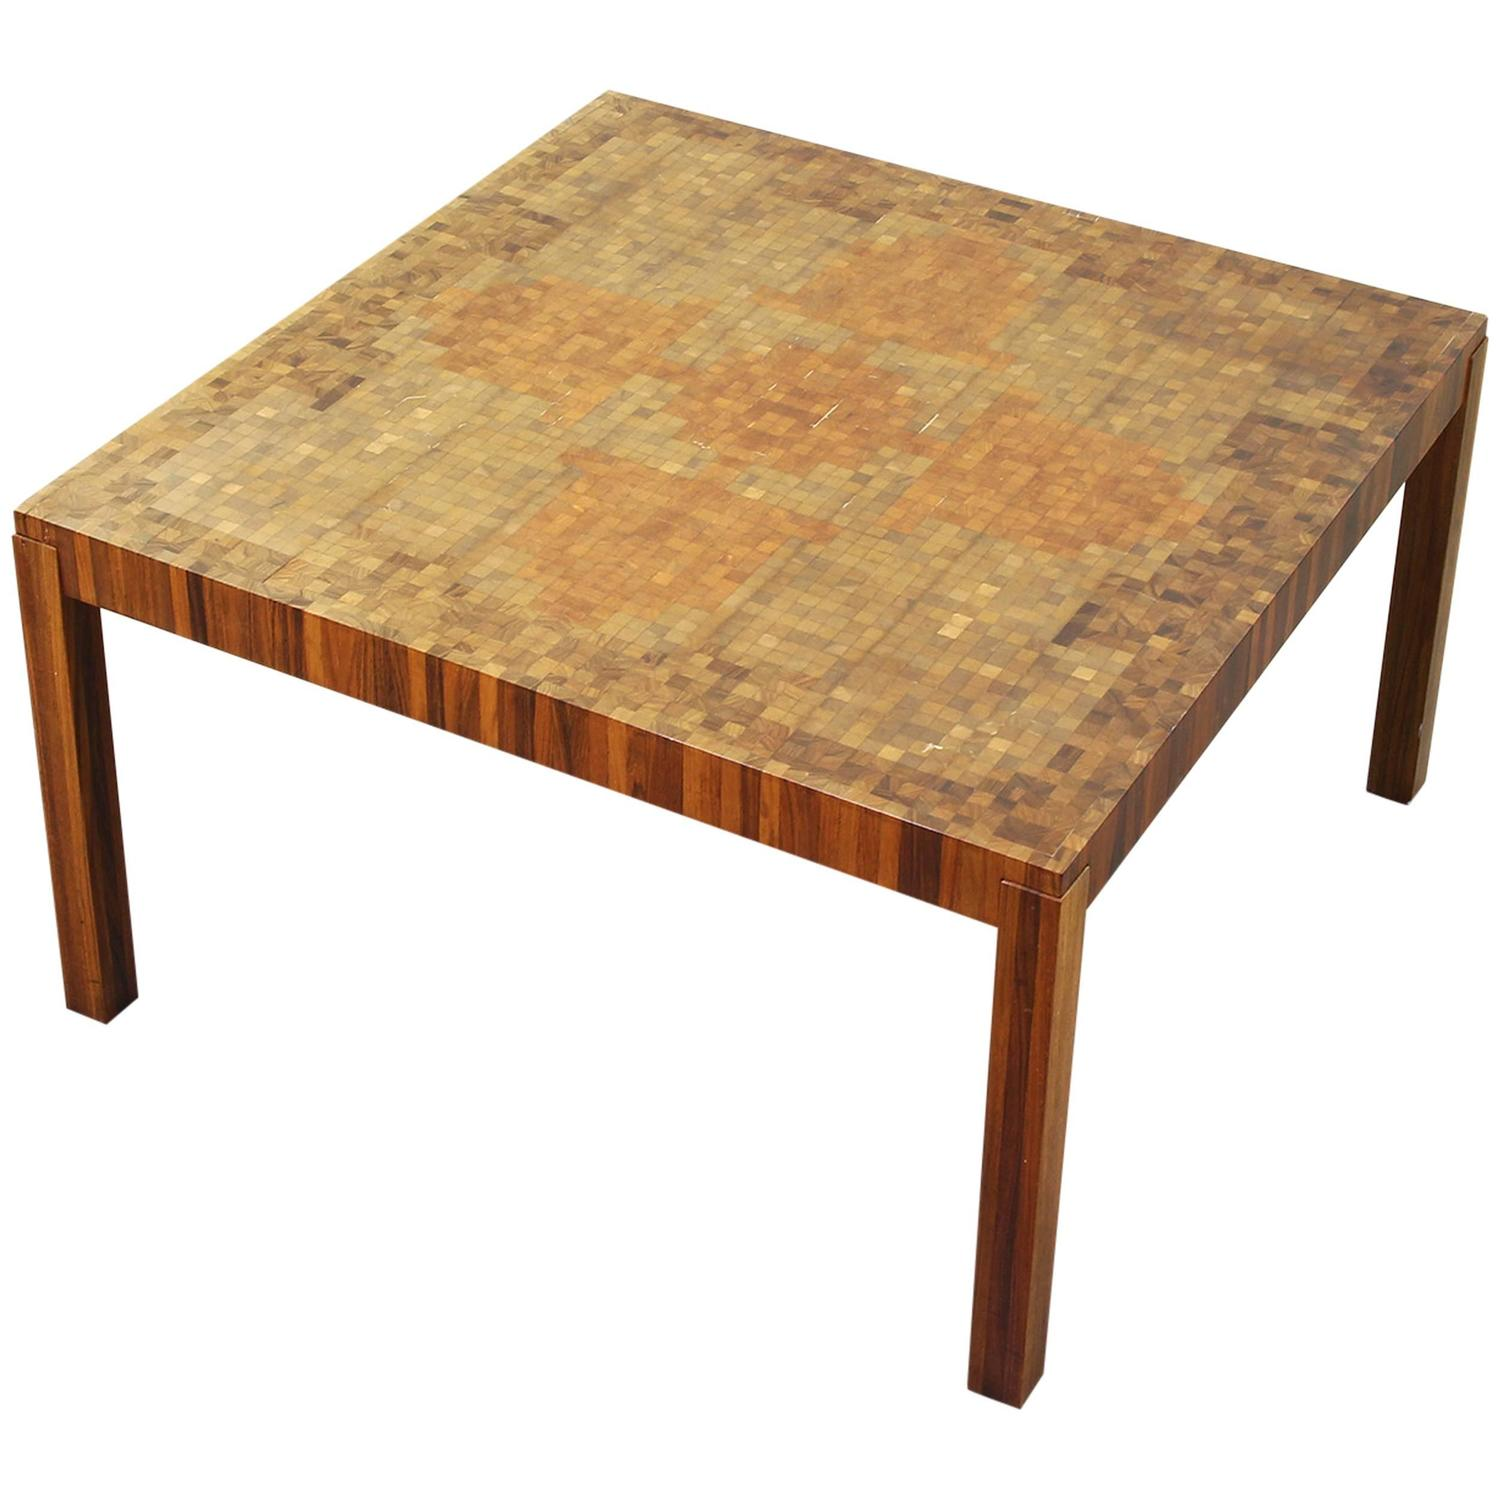 Amazing Coffee Tables An Amazing Coffee Table By Brabbu Decoholic Amazing Coffee Table 1950